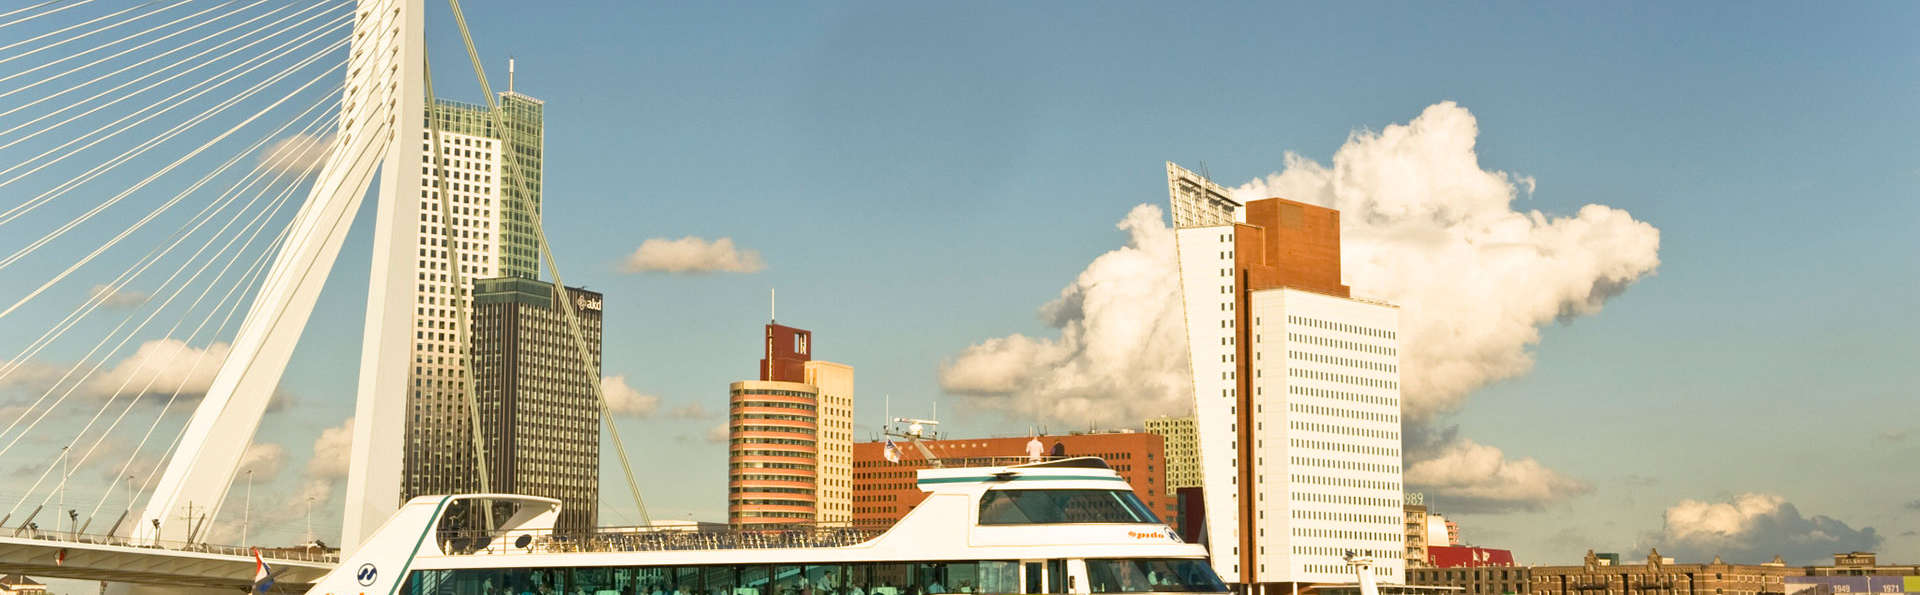 ss Rotterdam Hotel and Restaurants - EDIT_destination3.jpg